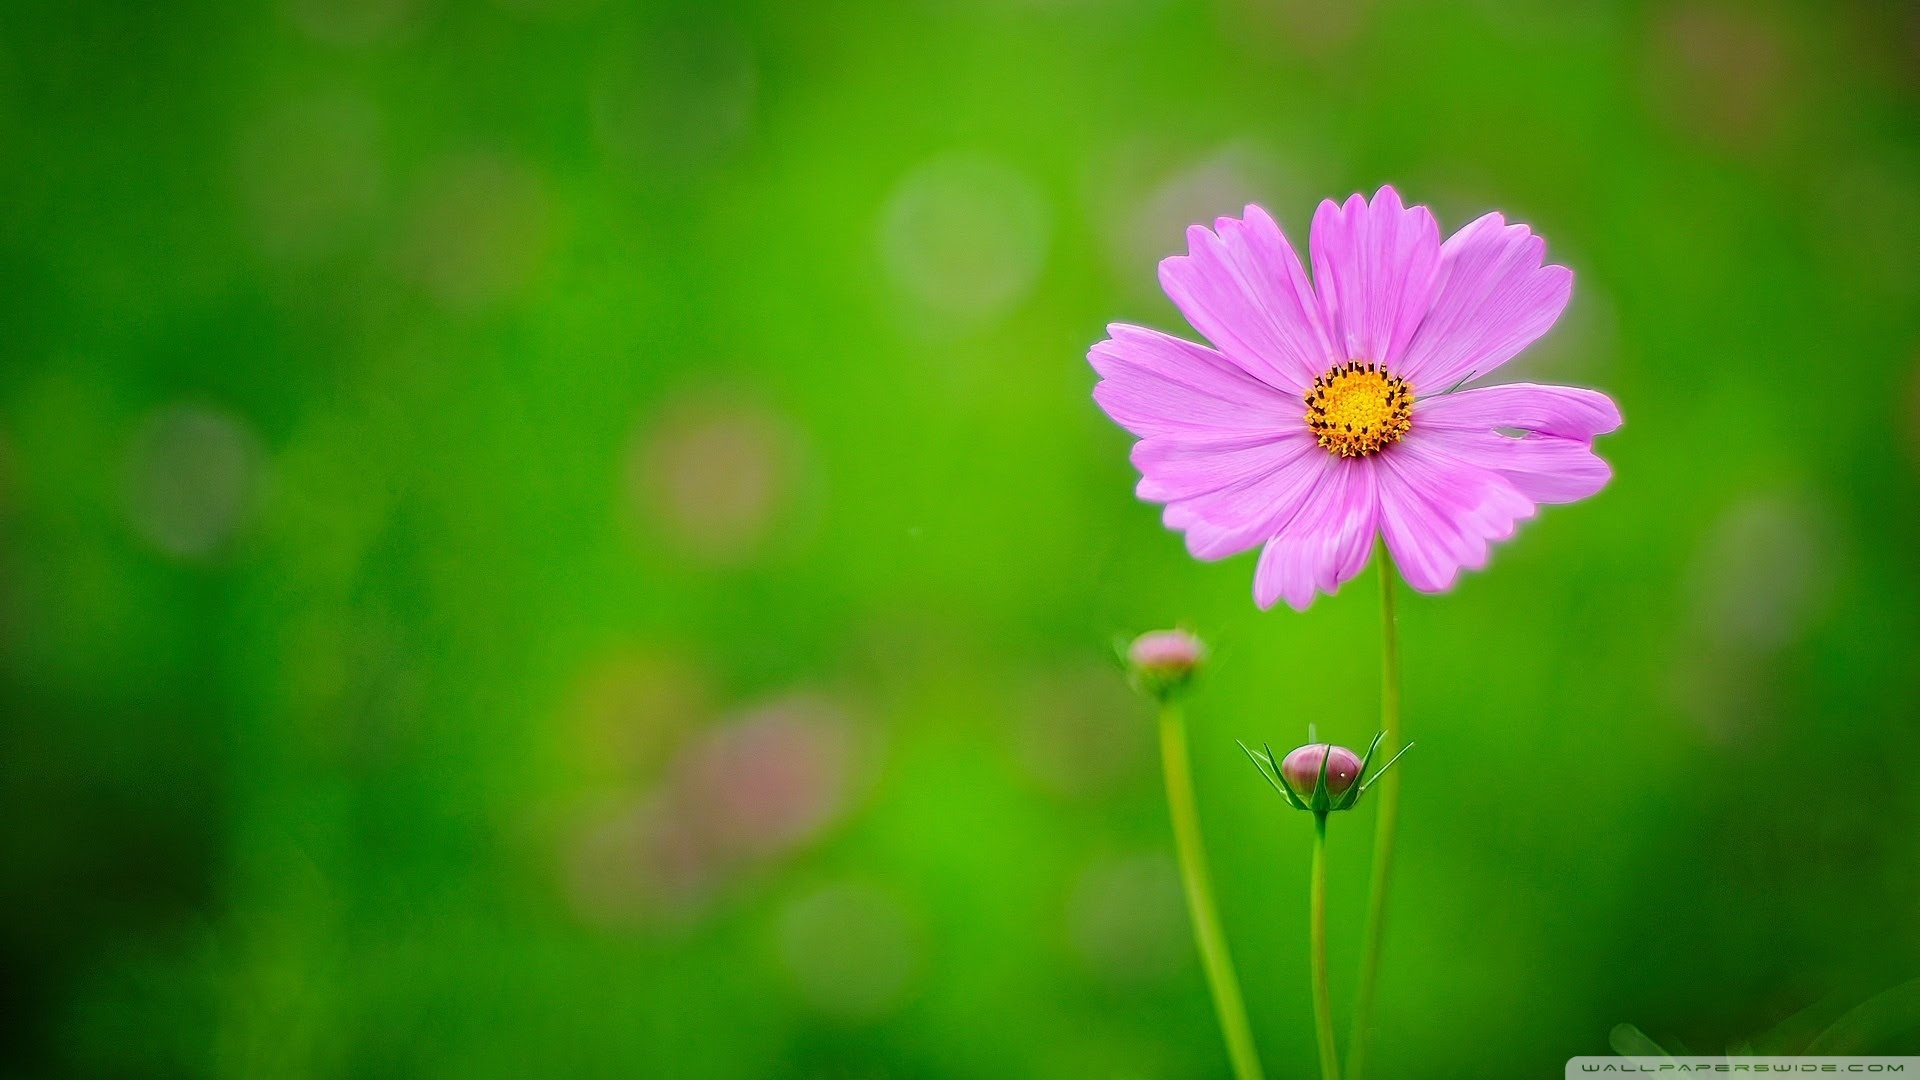 Pink Flower Green Background 4k Hd Desktop Wallpaper For 4k